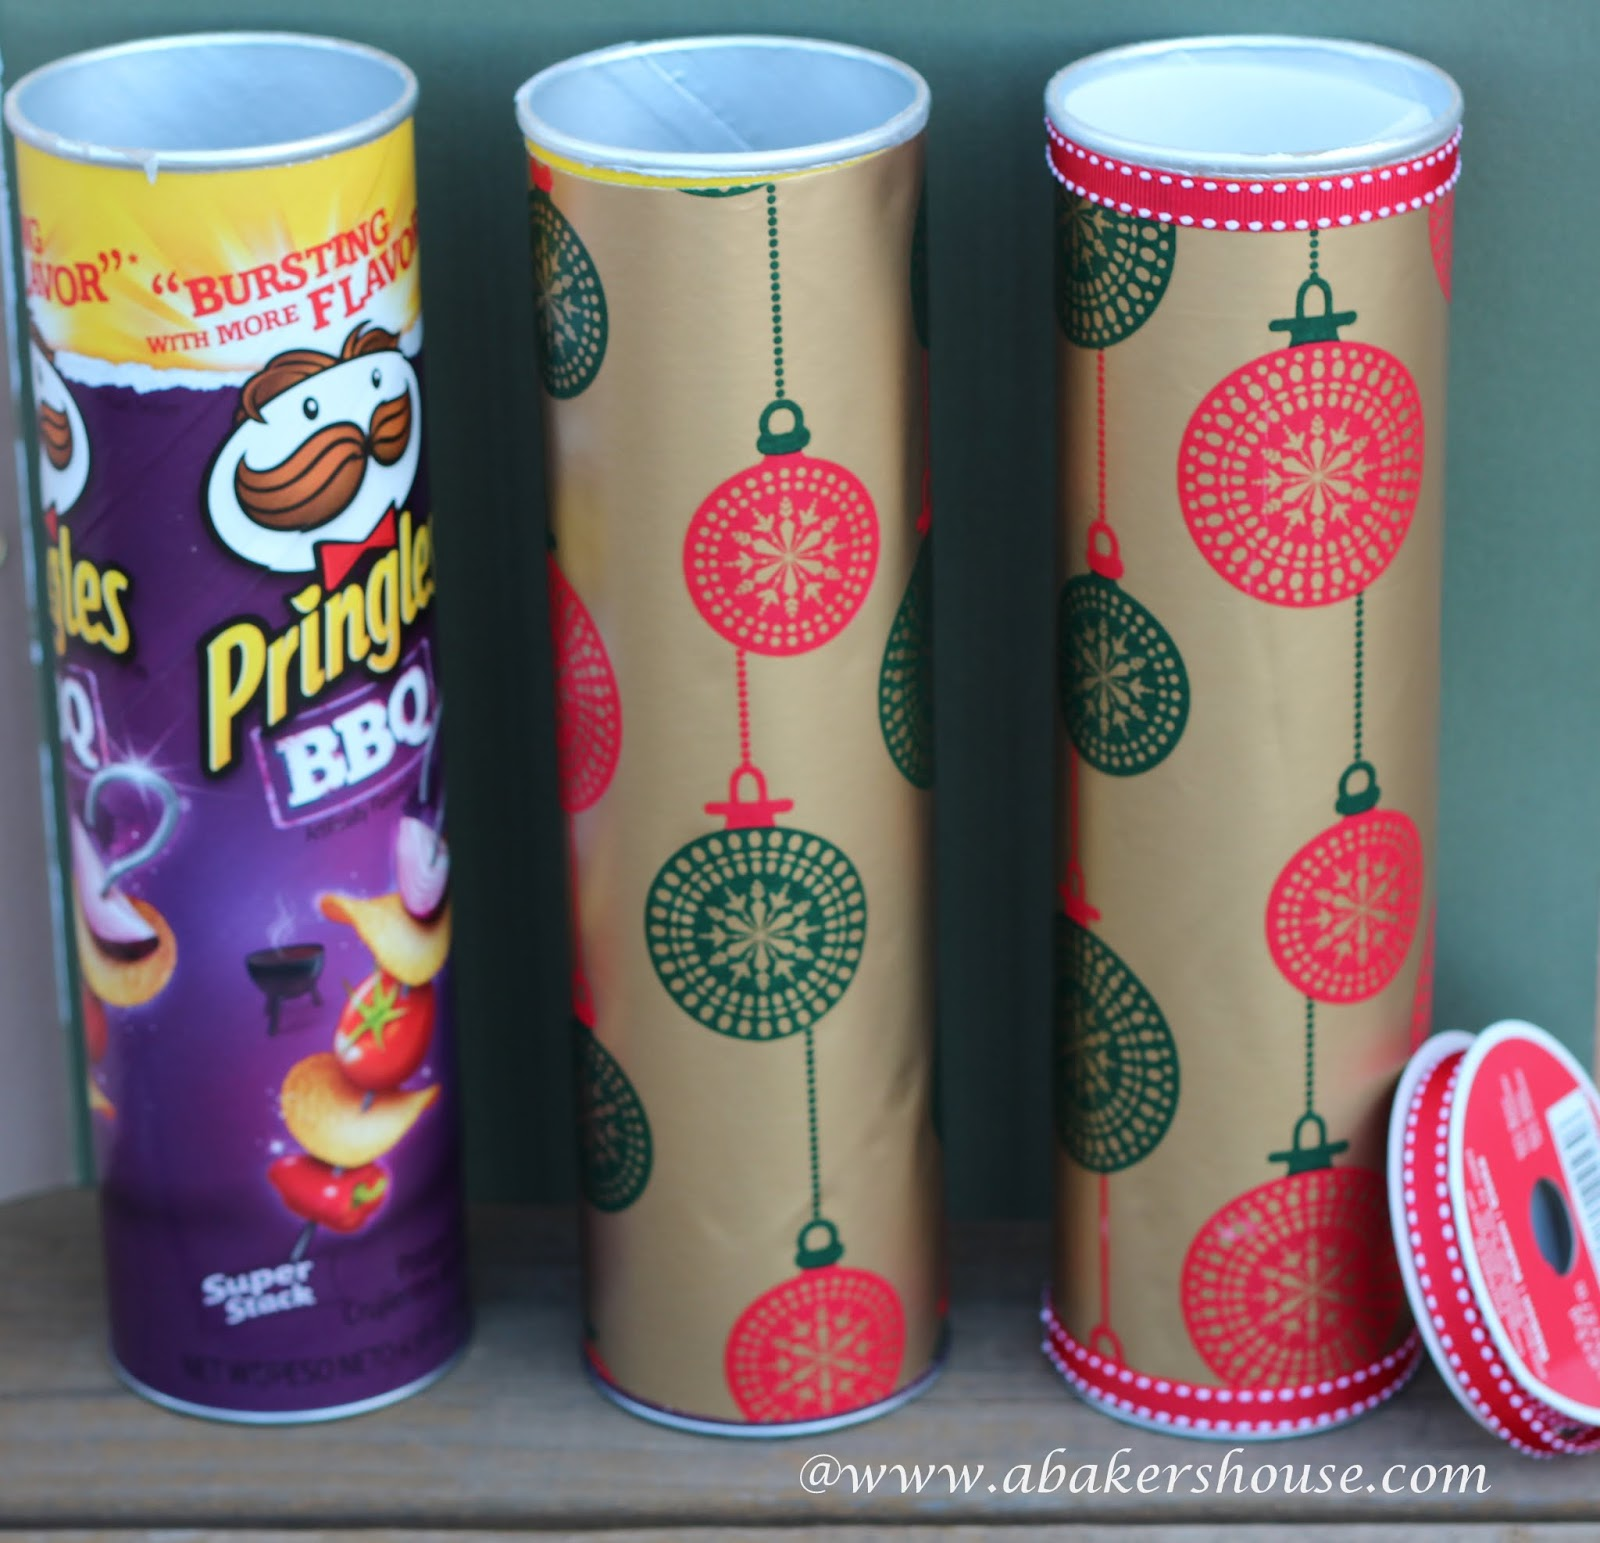 Pringles cans used as packaging for cookies